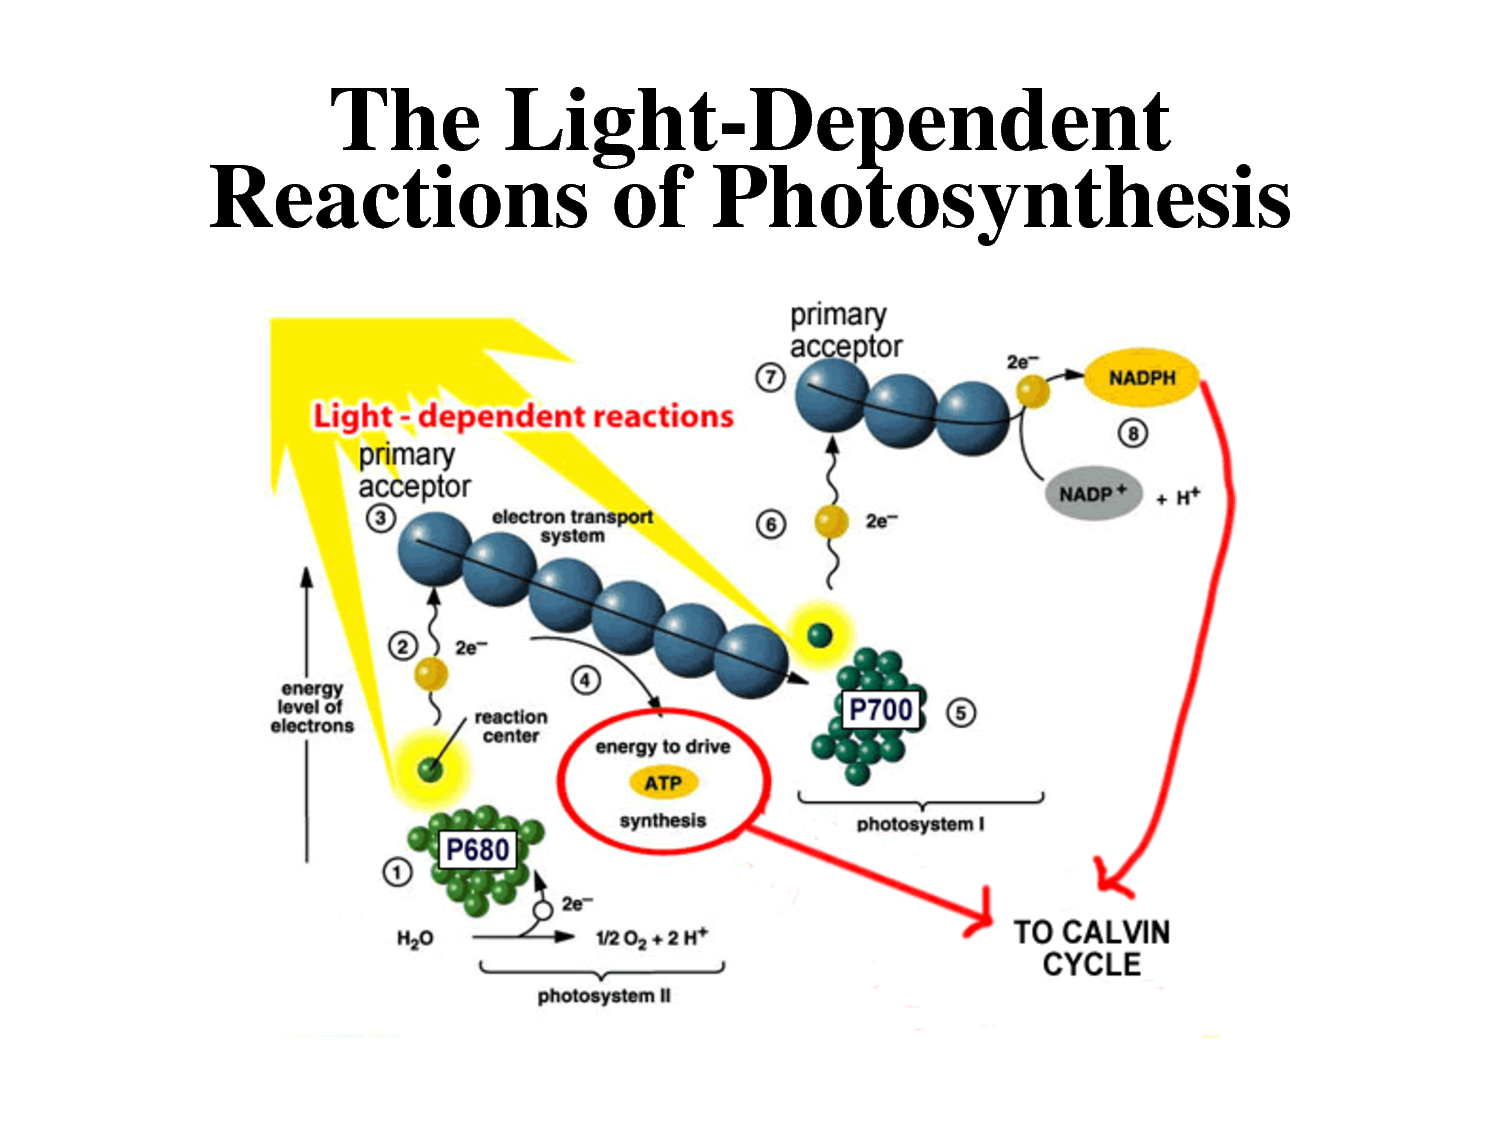 Photosynthesis light dependent reactions all things chemical photosynthesis light dependent reactions pooptronica Choice Image